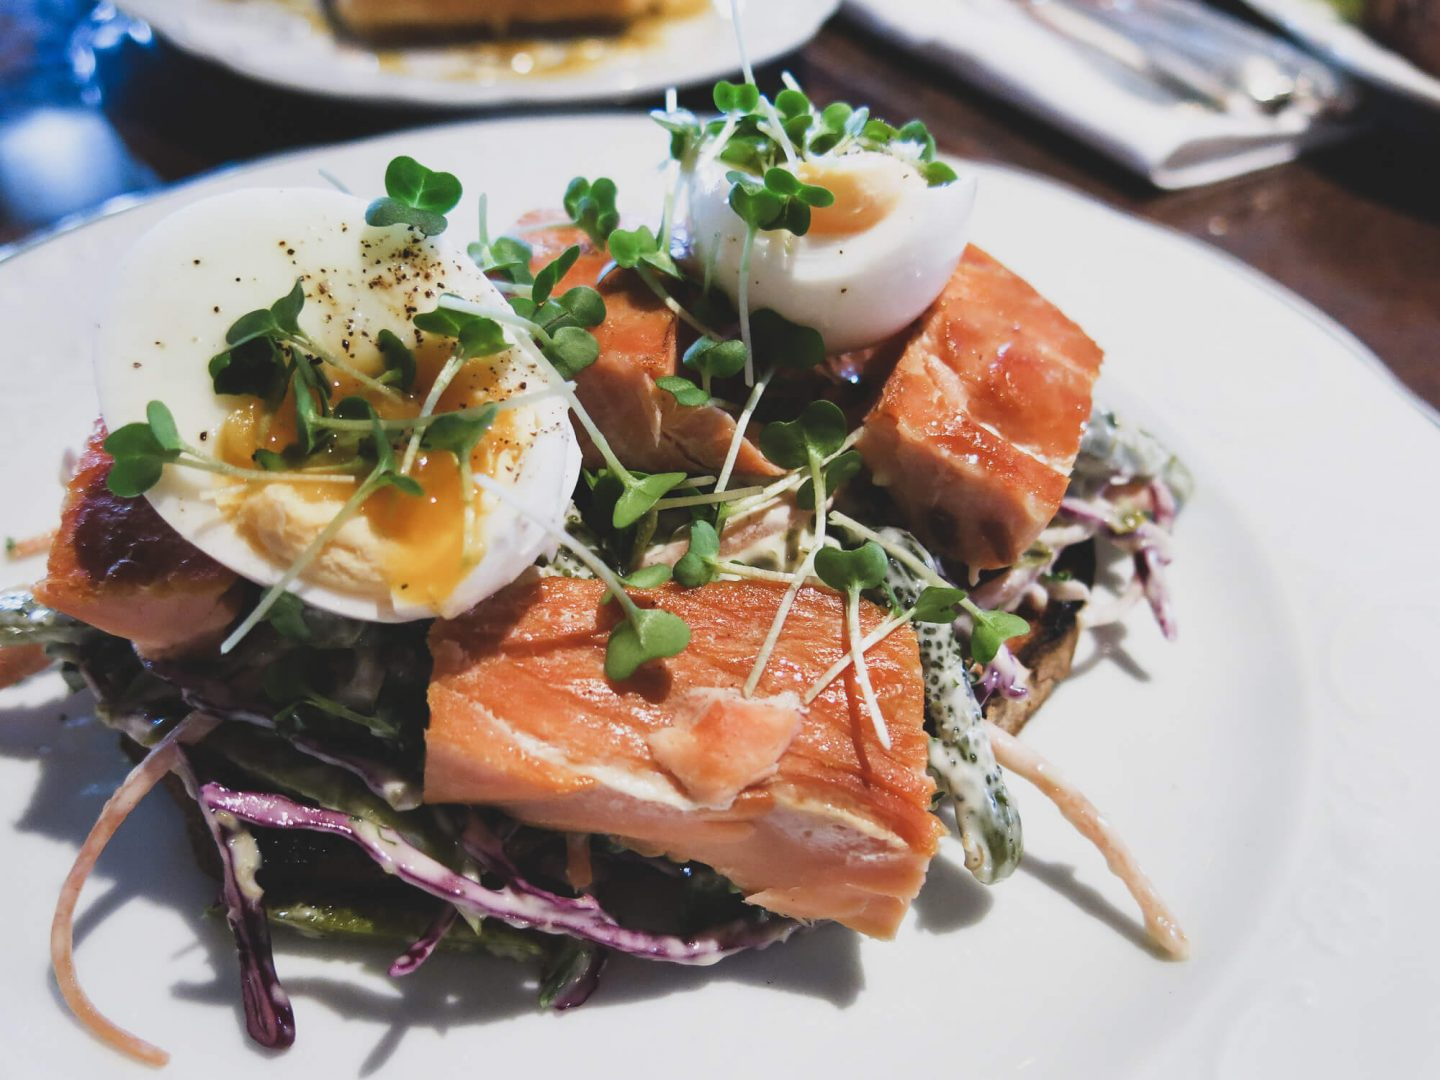 Hot smoked salmon with kale coleslaw. Brunch in London at Bellanger, Islington Green.